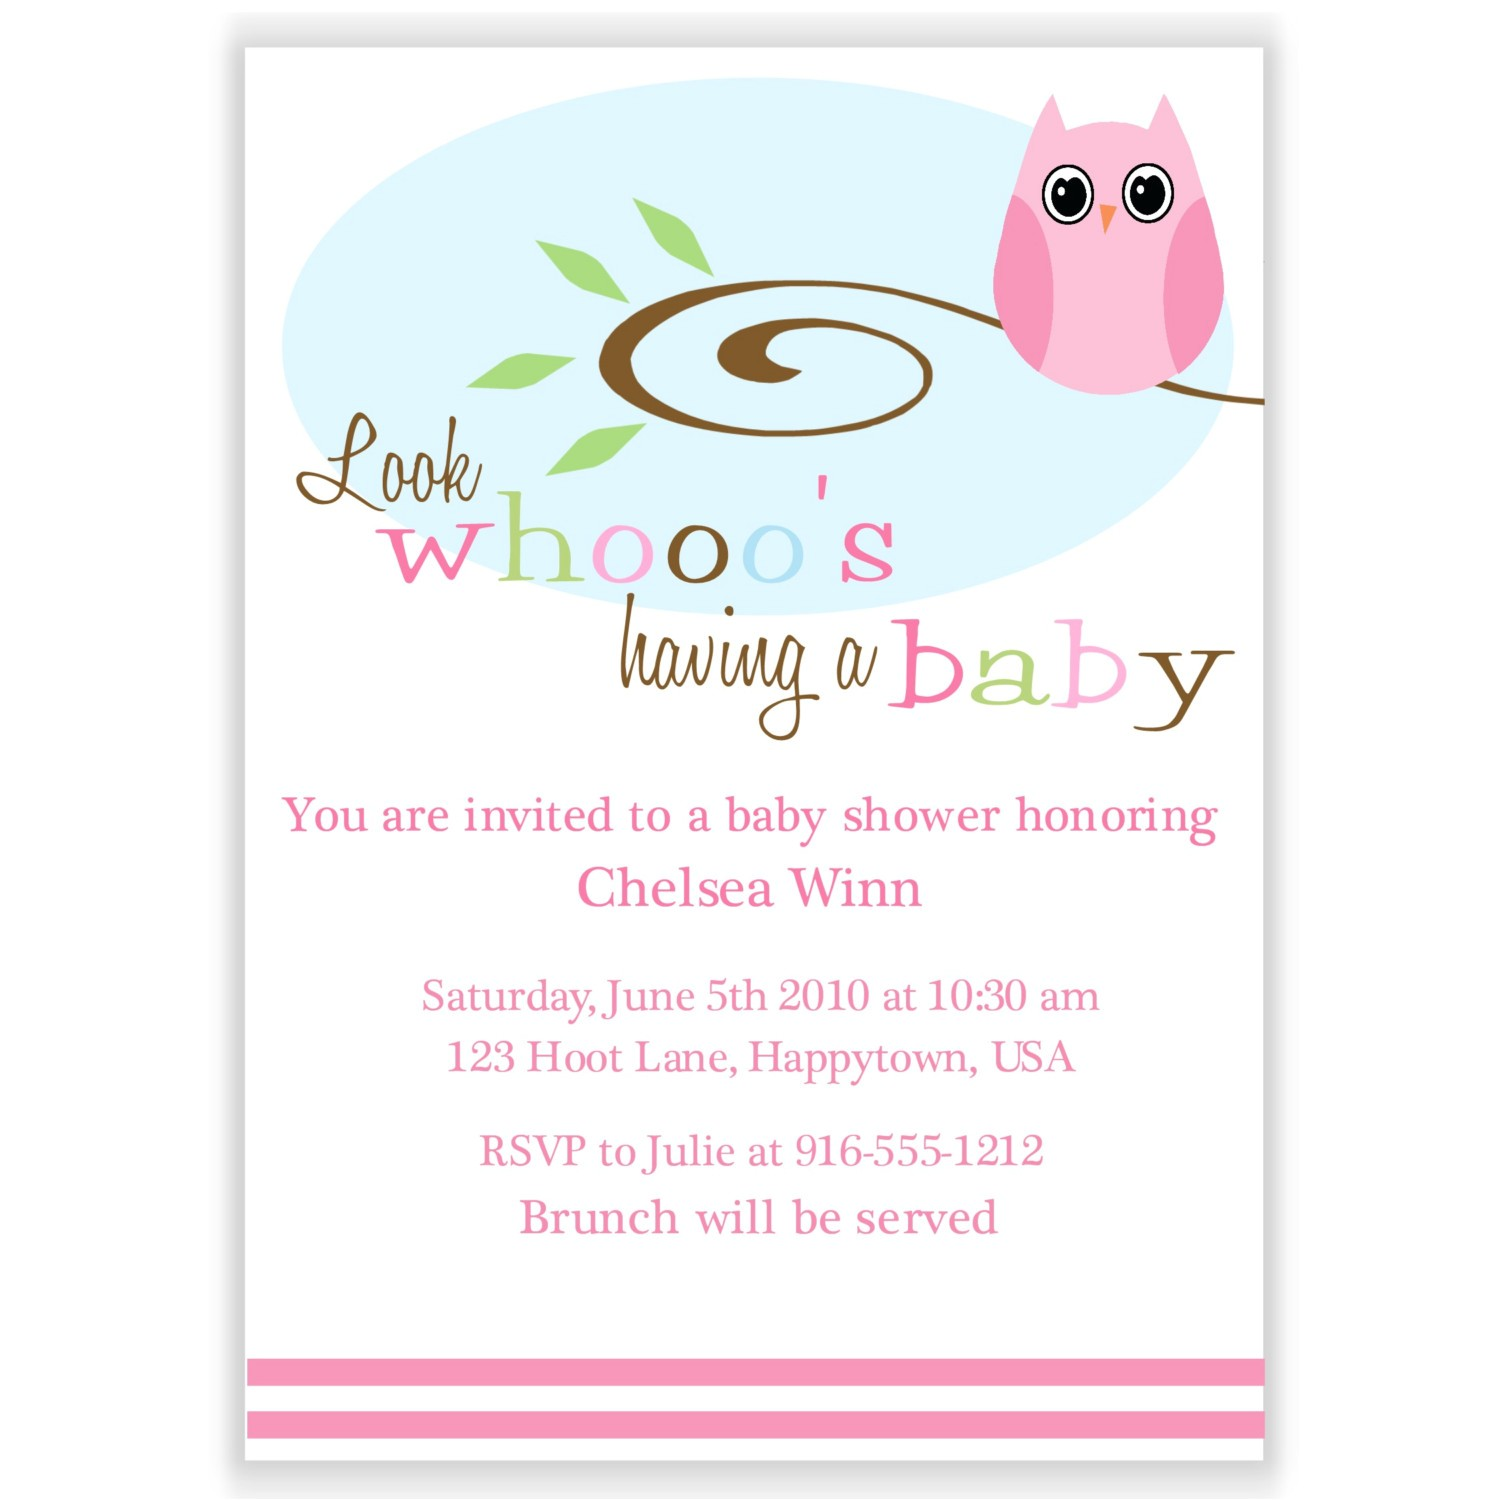 how to make shutterfly baby shower invitations templates the silverlininginvitations